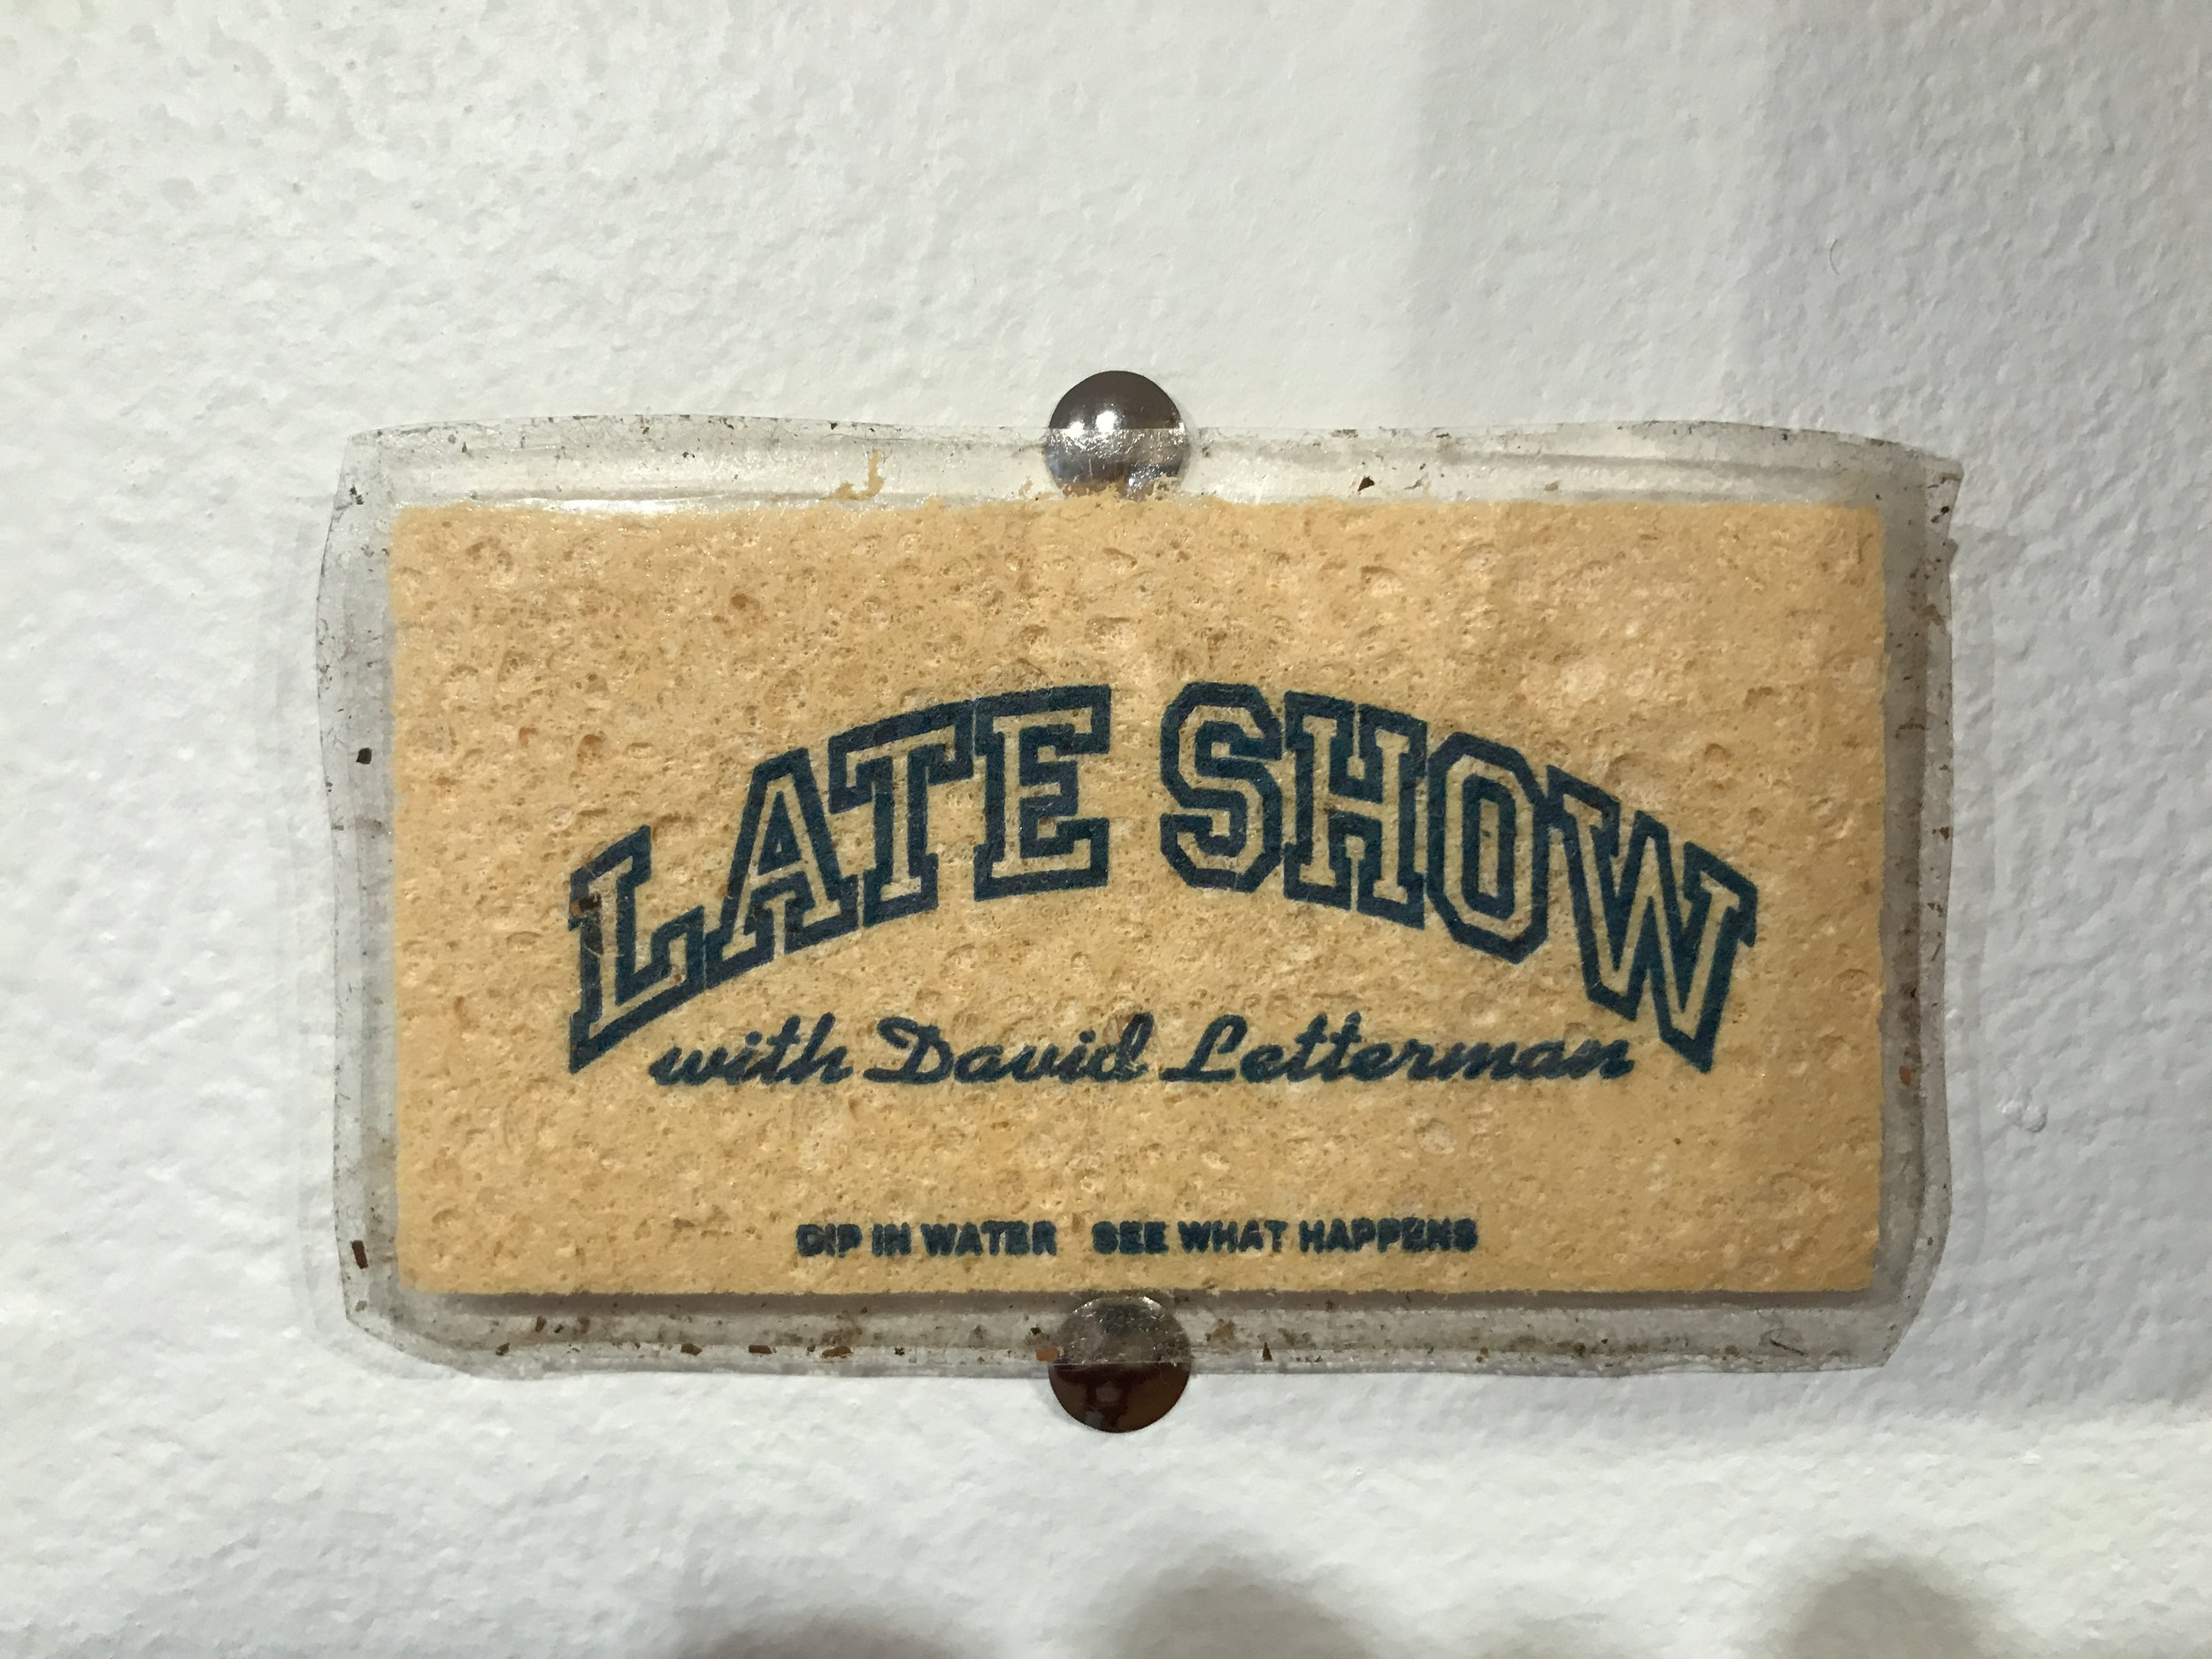 Late Show with David Letterman Sponge (Myles, Stagehand)